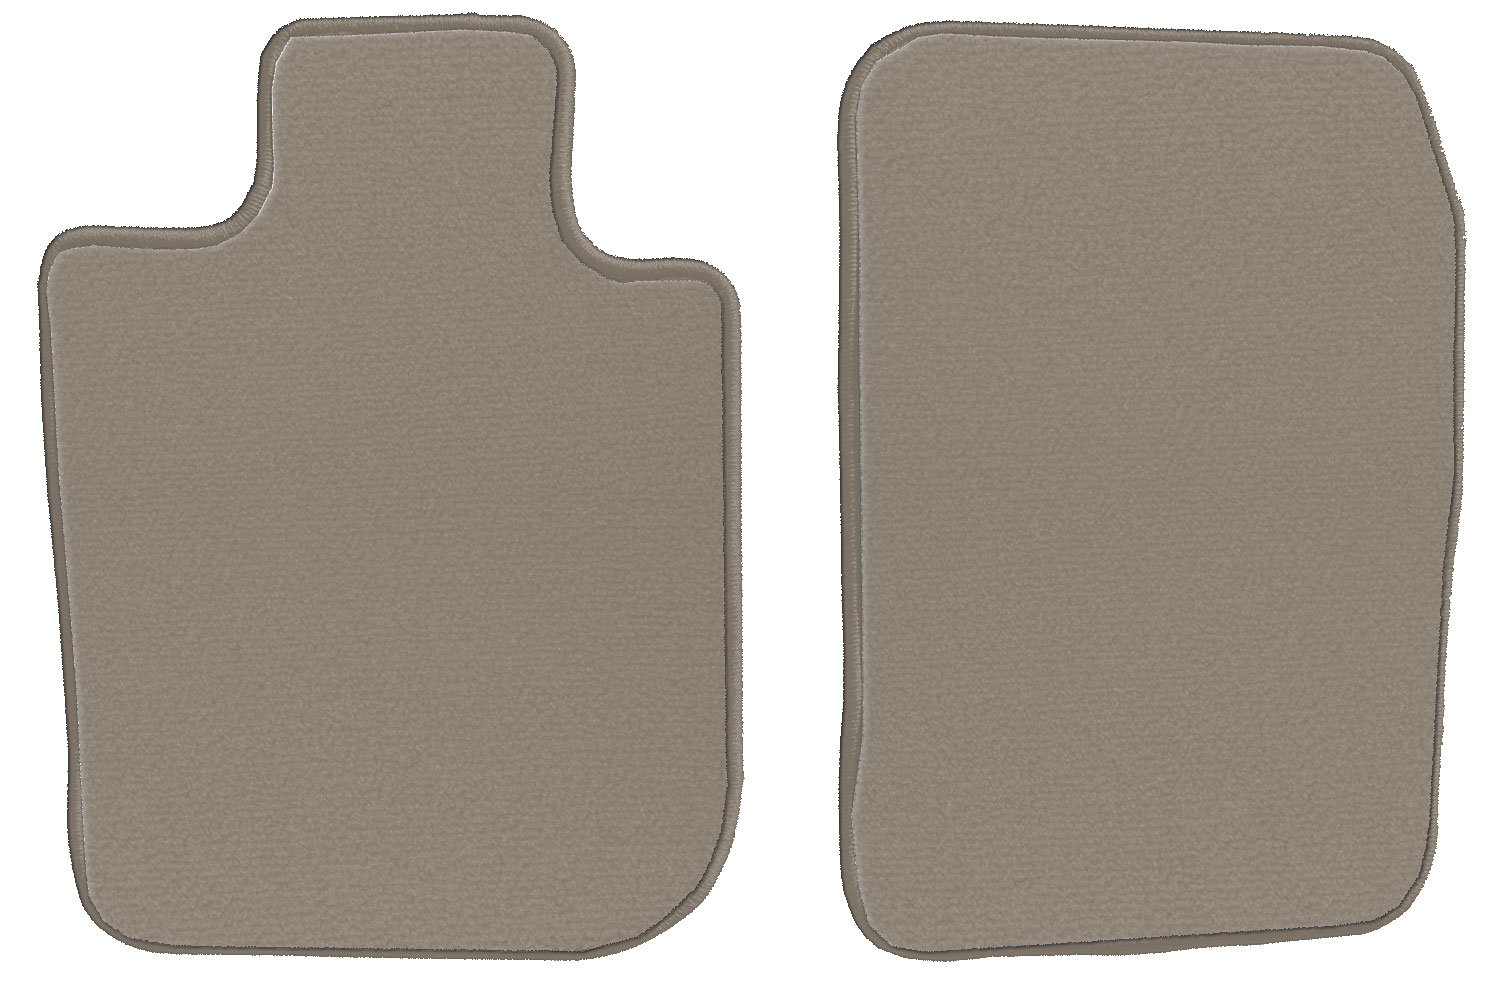 1992 1990 1994 1989 1991 1987 1996 Cadillac Fleetwood Sedan Beige Loop Driver /& Passenger GGBAILEY D2798A-F1A-BG-LP Custom Fit Automotive Carpet Floor Mats for 1985 1986 1993 1995 1988